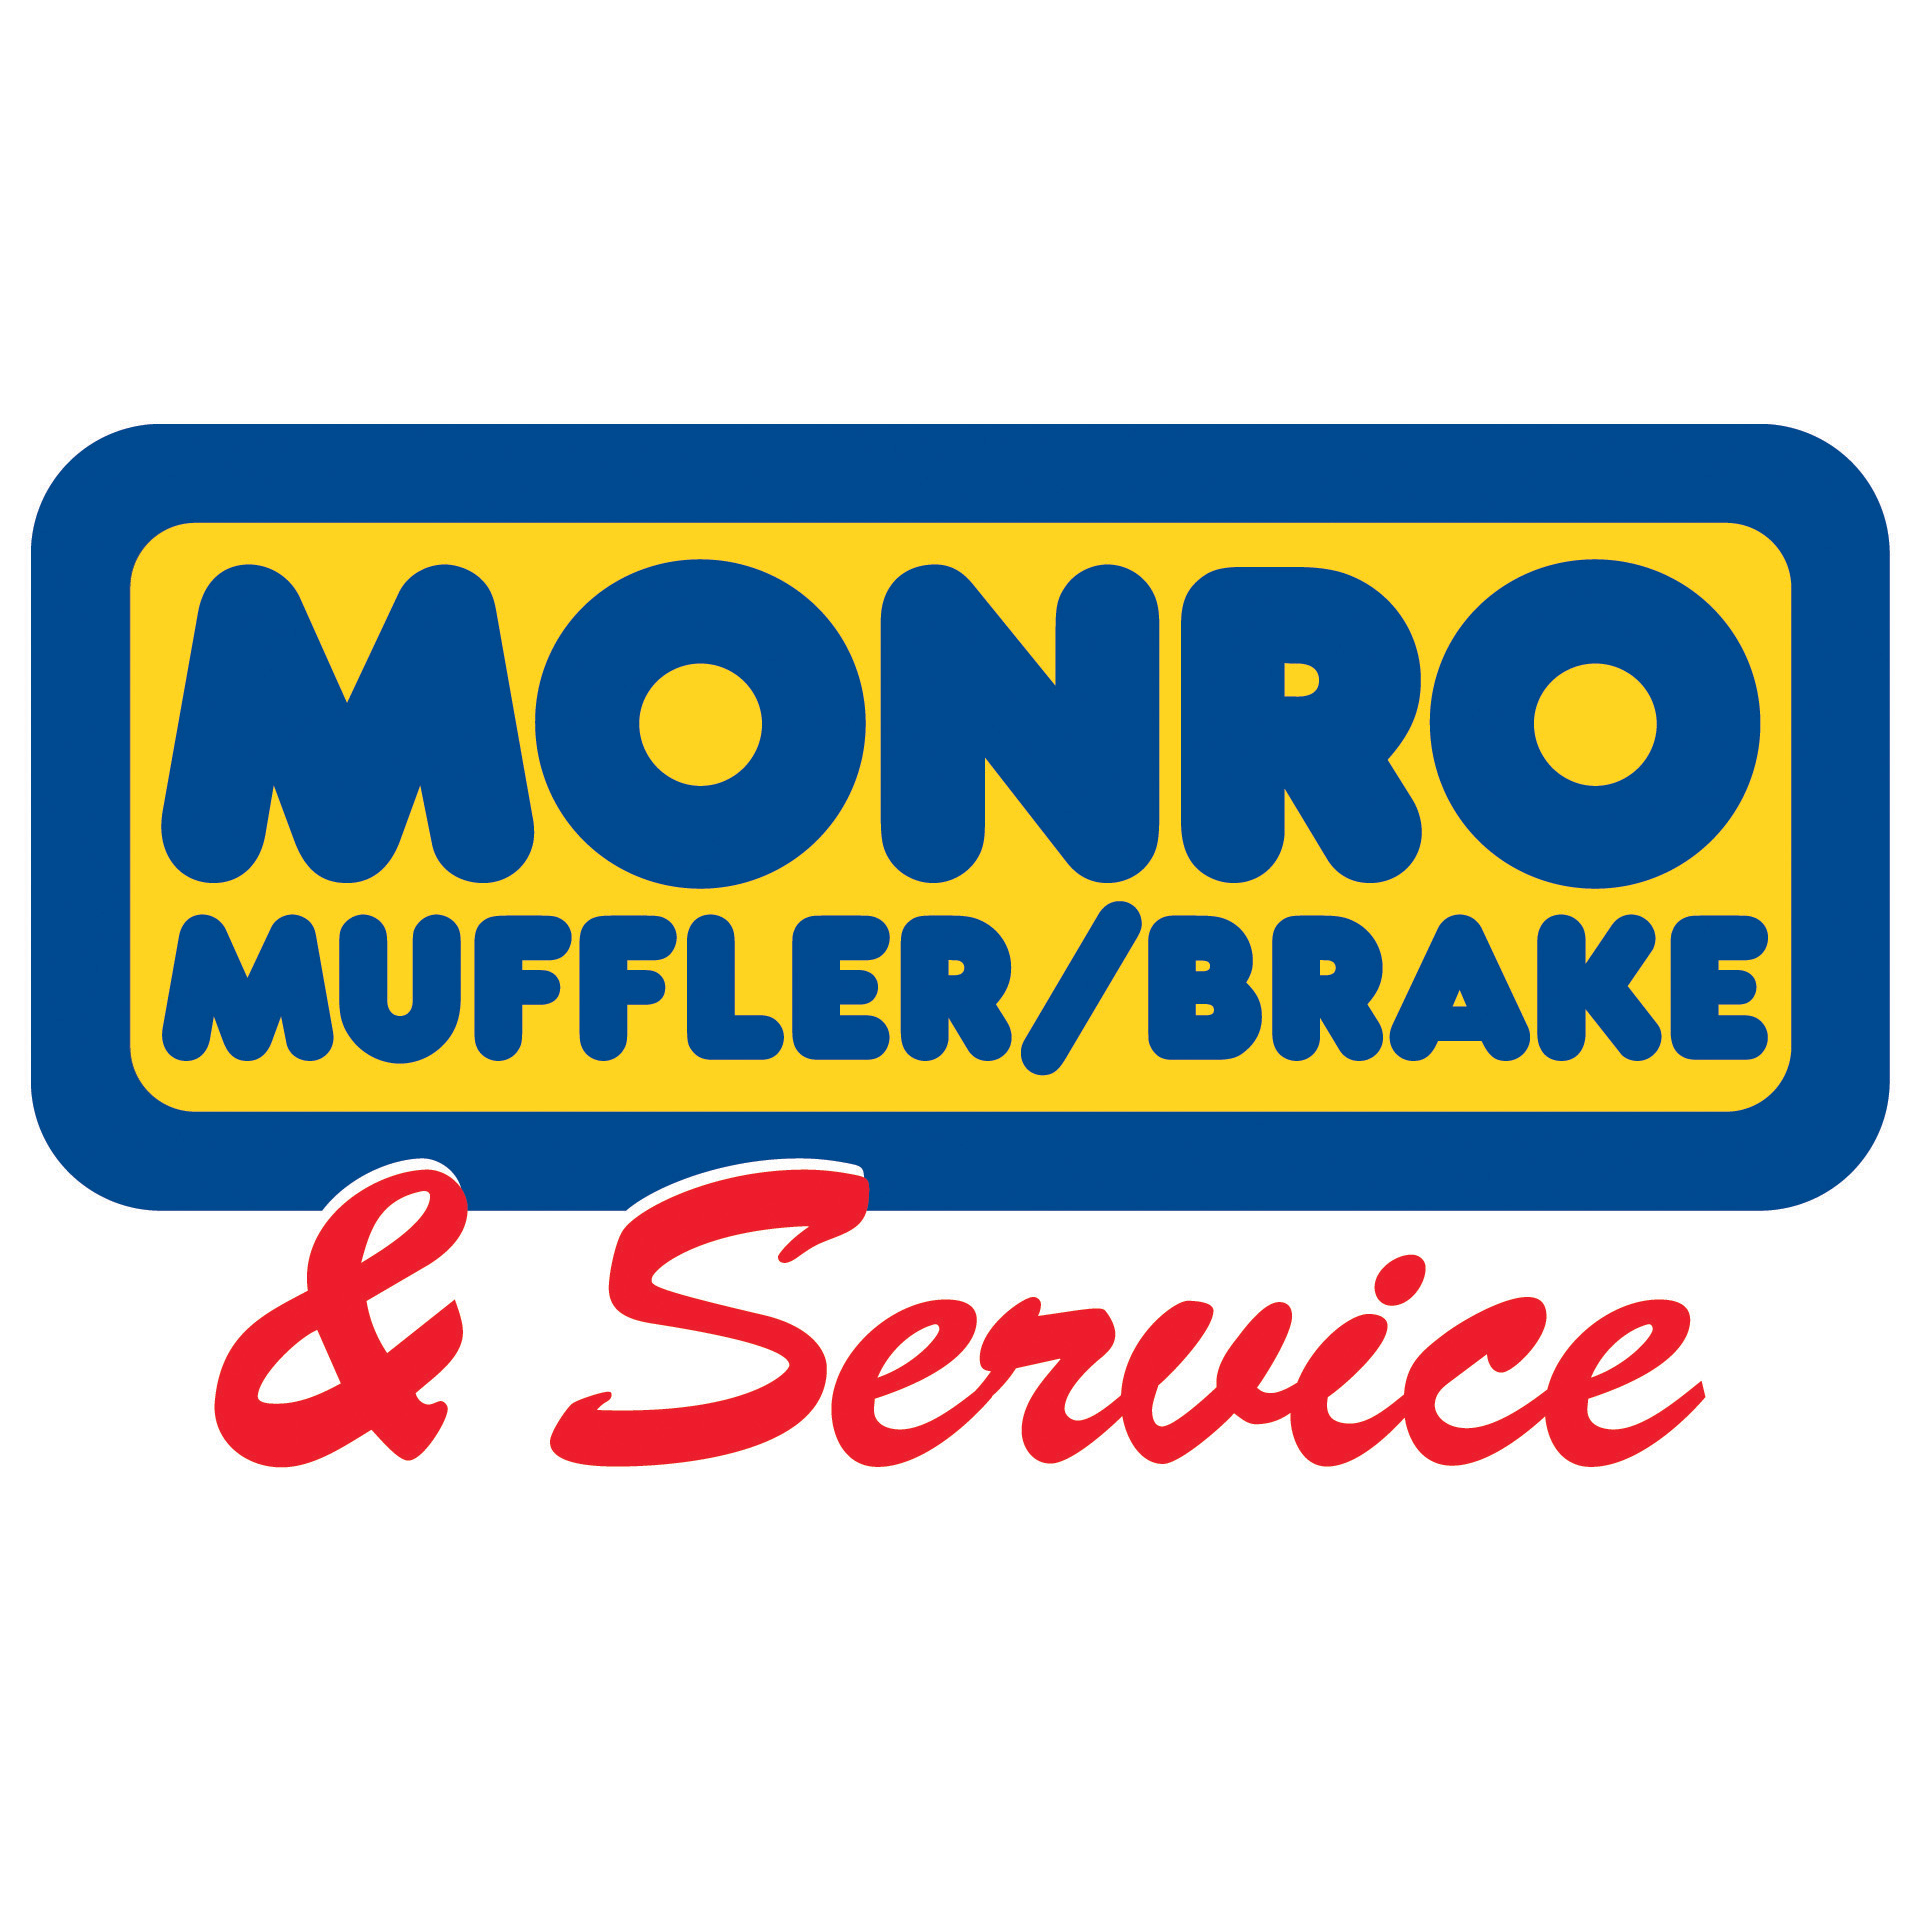 Monro Muffler Brake & Service at 1344 S Trimble Road Mansfield OH